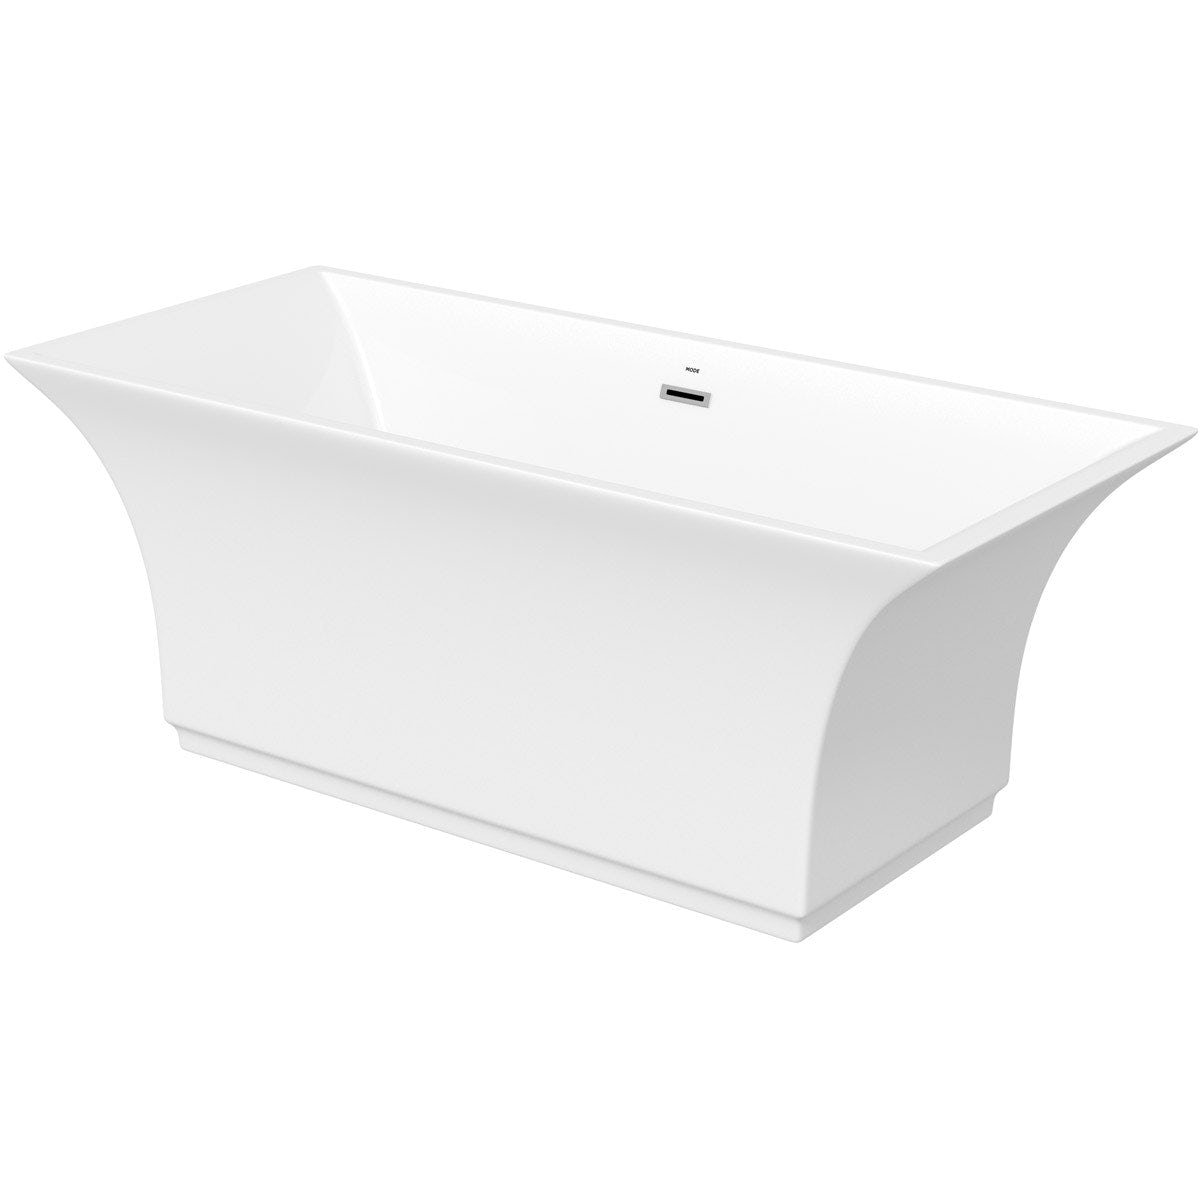 Mode Austin freestanding bath 1700 x 750 offer pack